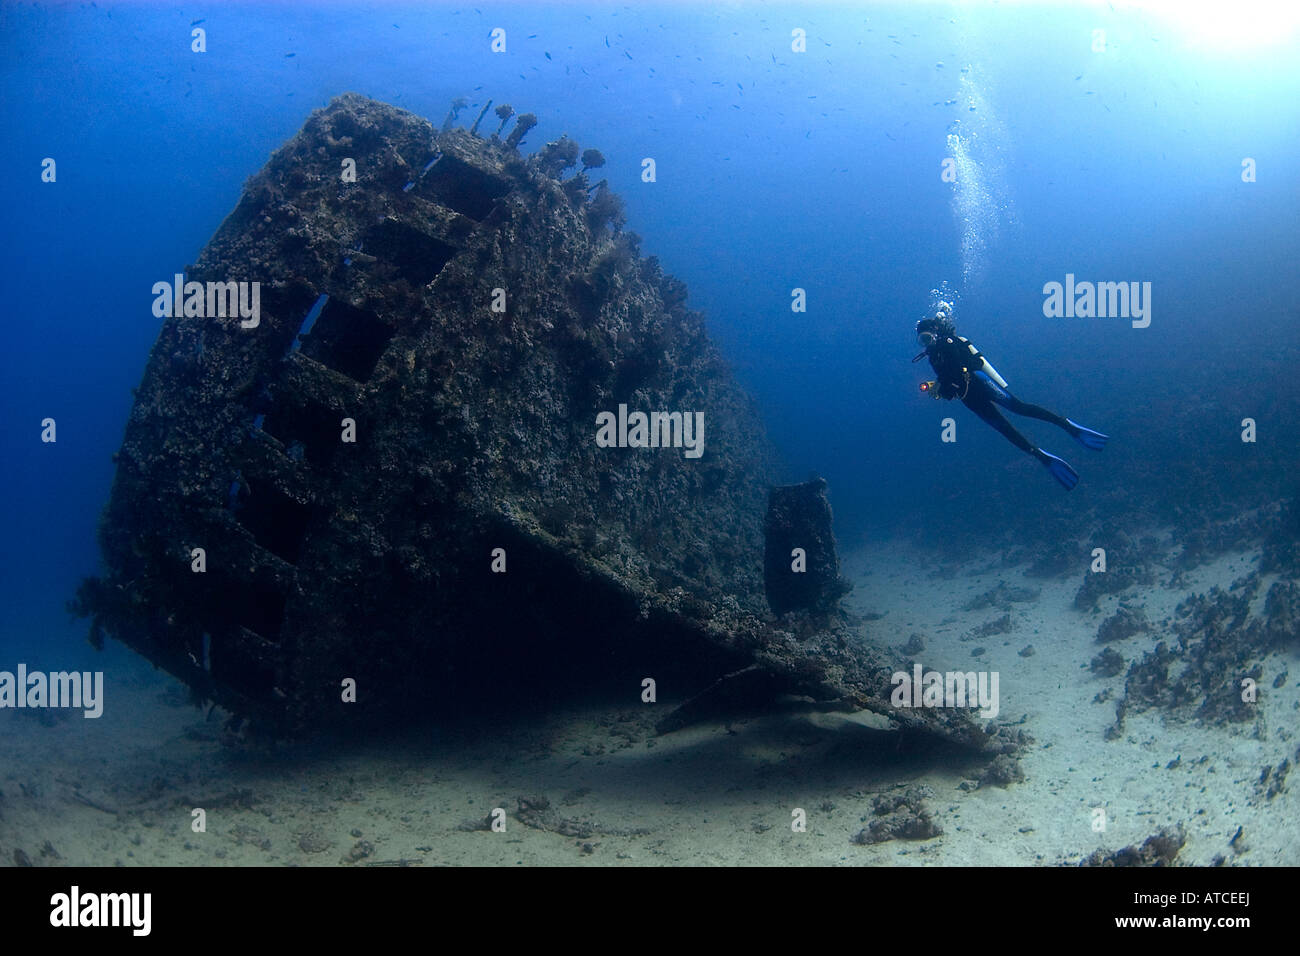 Diver and Carnatic shipwreck Red Sea, underwater, scuba, diving, sea, ocean, blue water, deep, ship, wreck, female - Stock Image